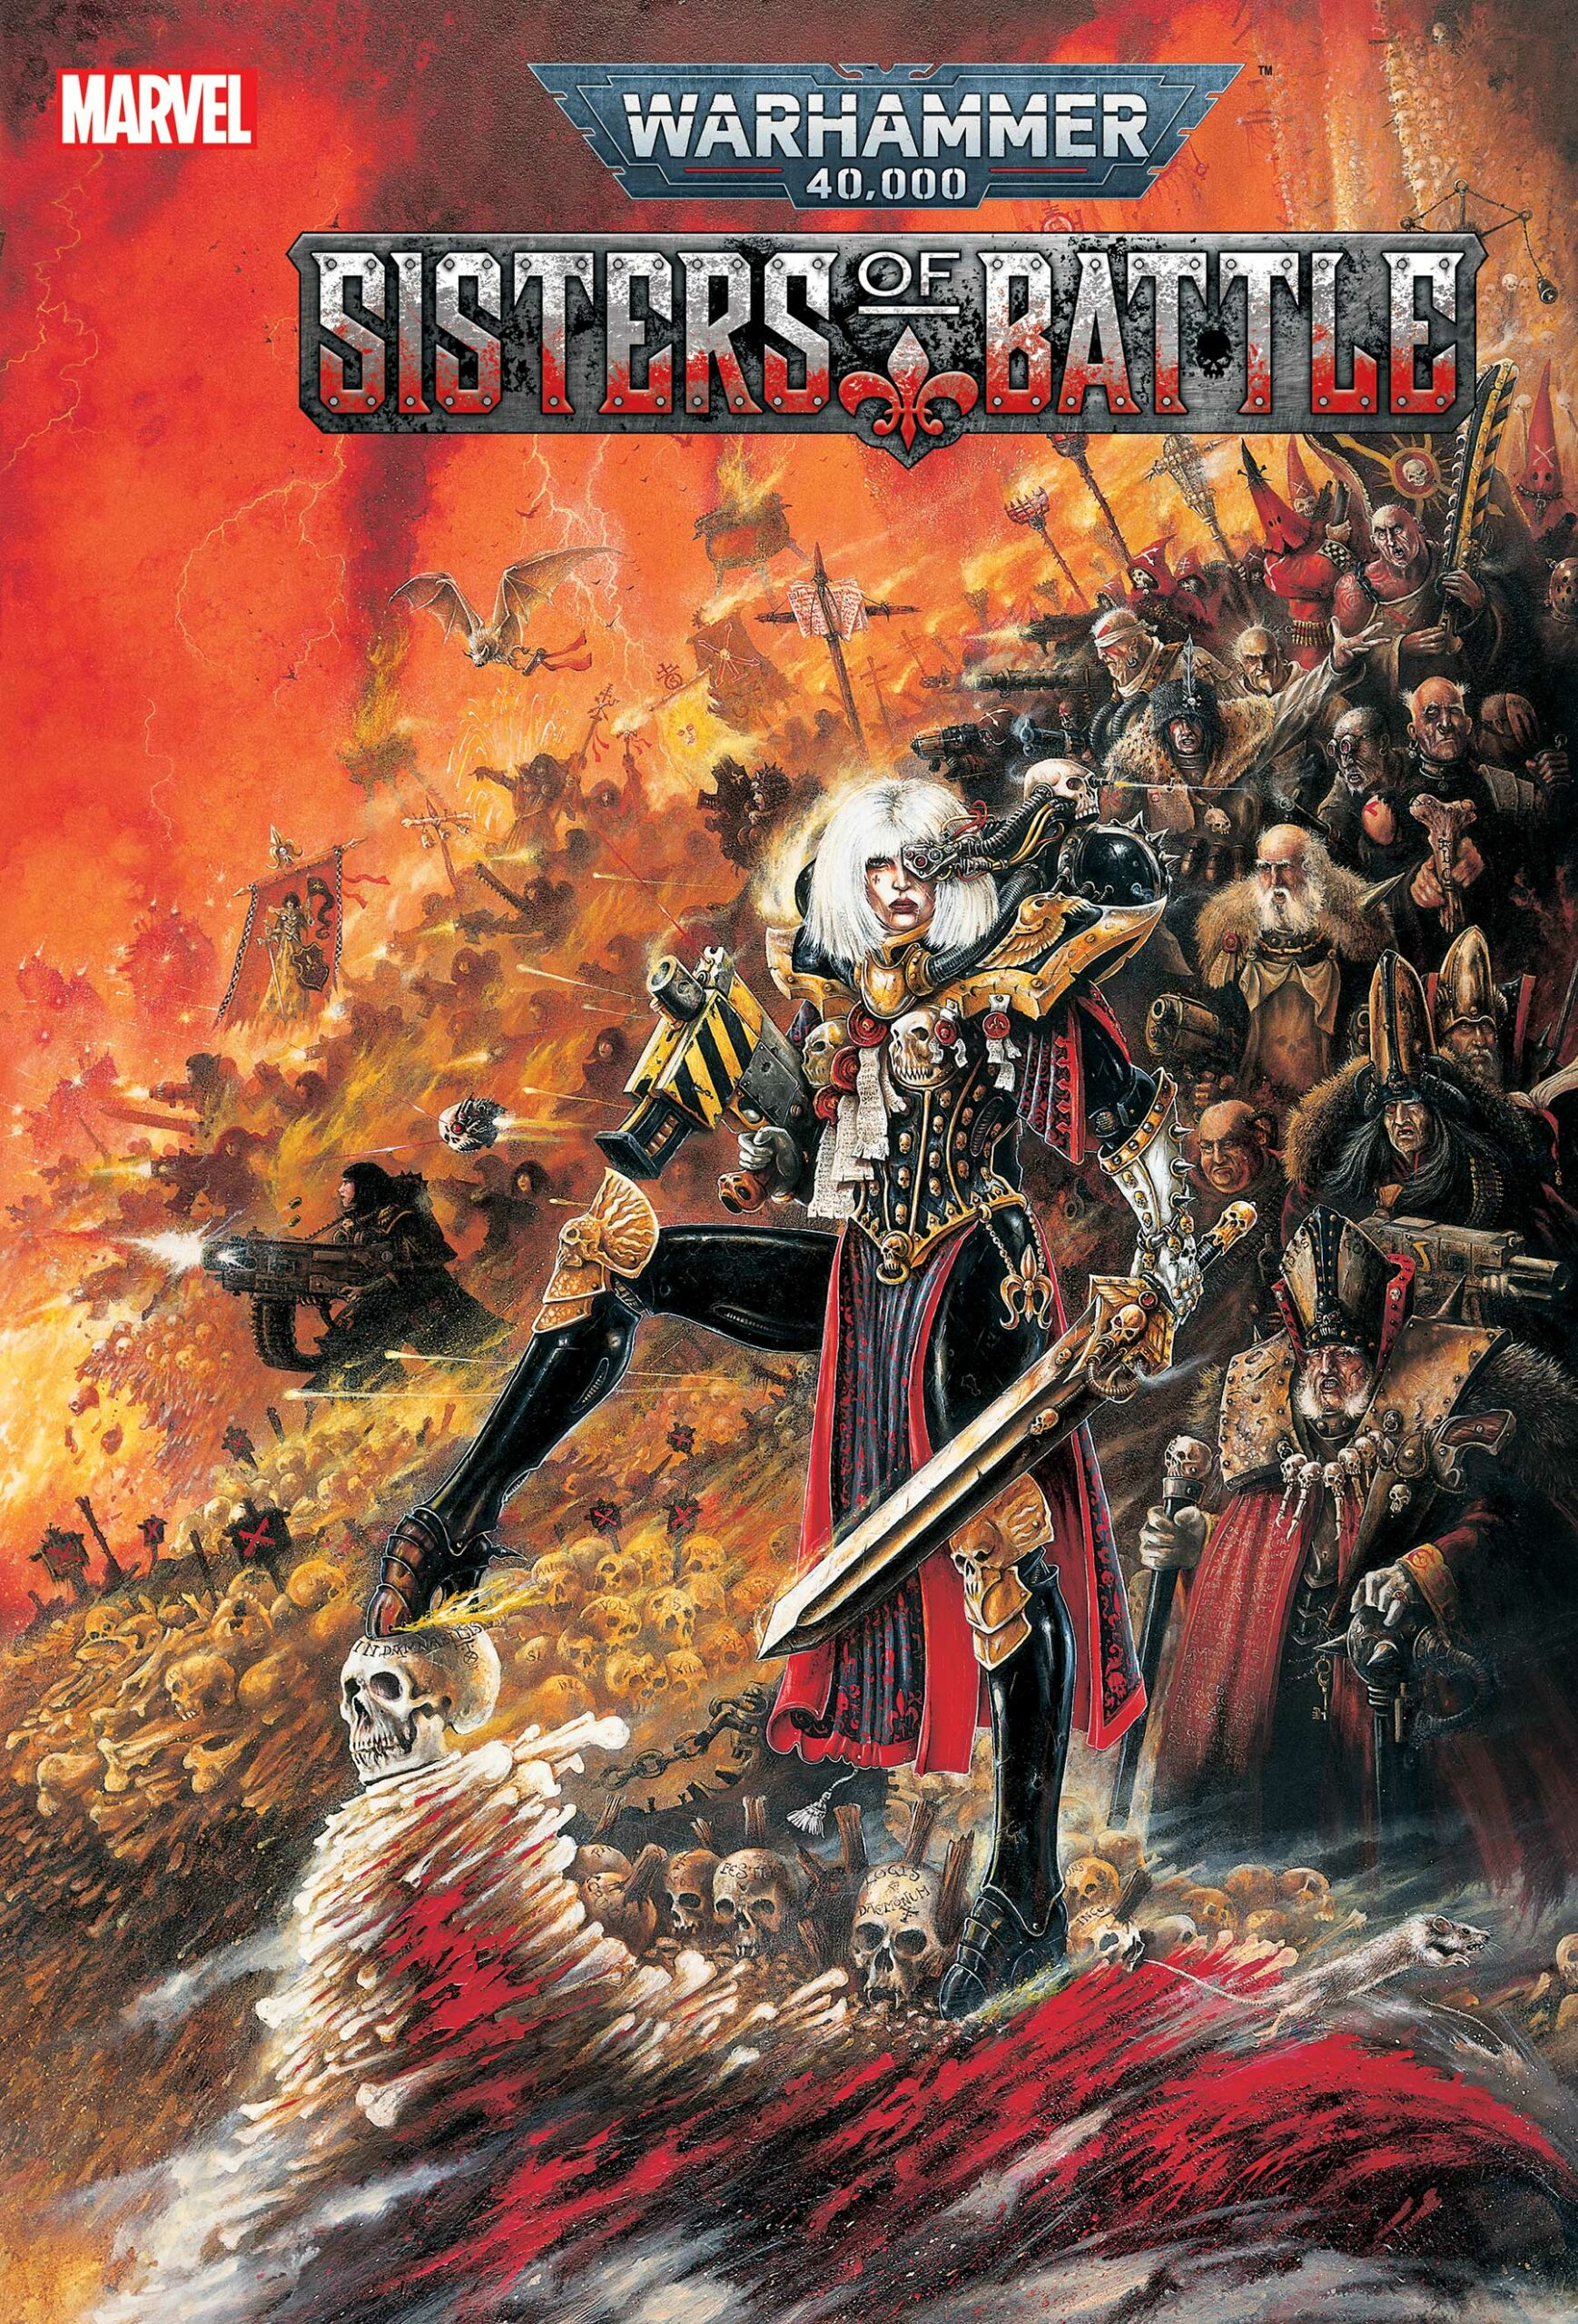 WARHAMMER 40,000: SISTERS OF BATTLE #1 - Variant Cover